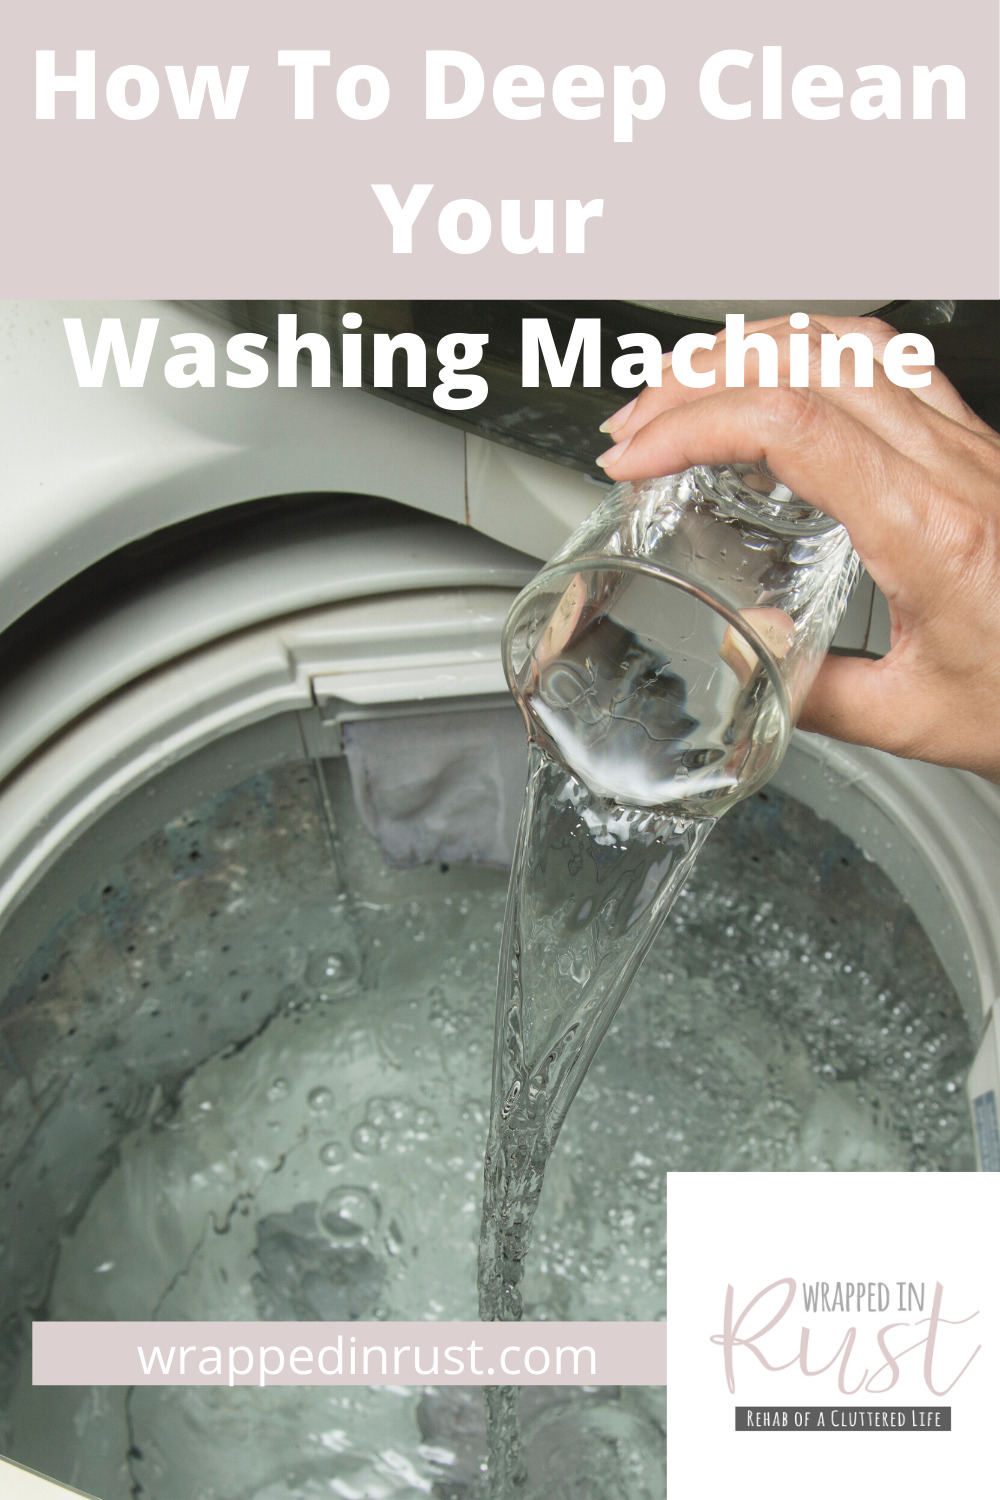 Your washing machine cleans things so it should come with a self cleaning option, right? Well, you still need to do your part to make sure it is sparkling clean, or your clothes could be affected. Read on to learn how and how often your should clean your washing machine. #cleaningtips #cleanwashingmachine #how to #wrappedinrustblog